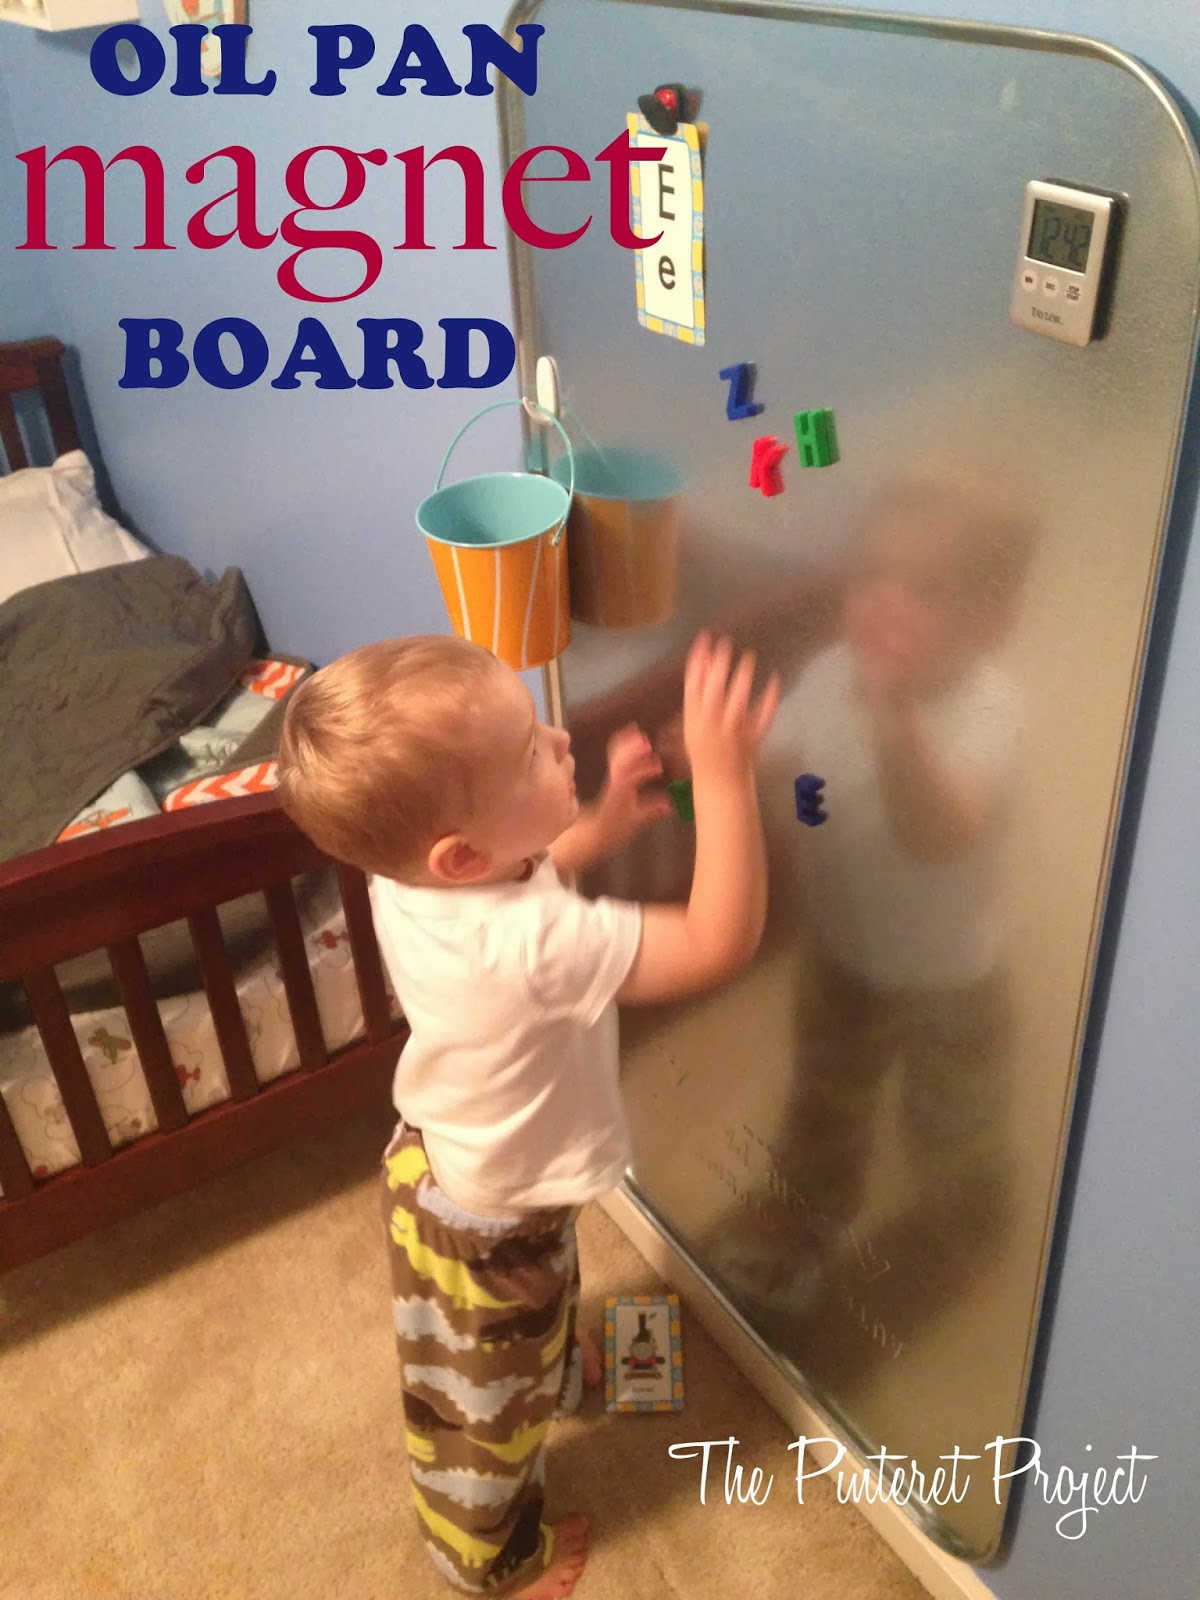 Oil Pan Magnet Board The Pinterest Project